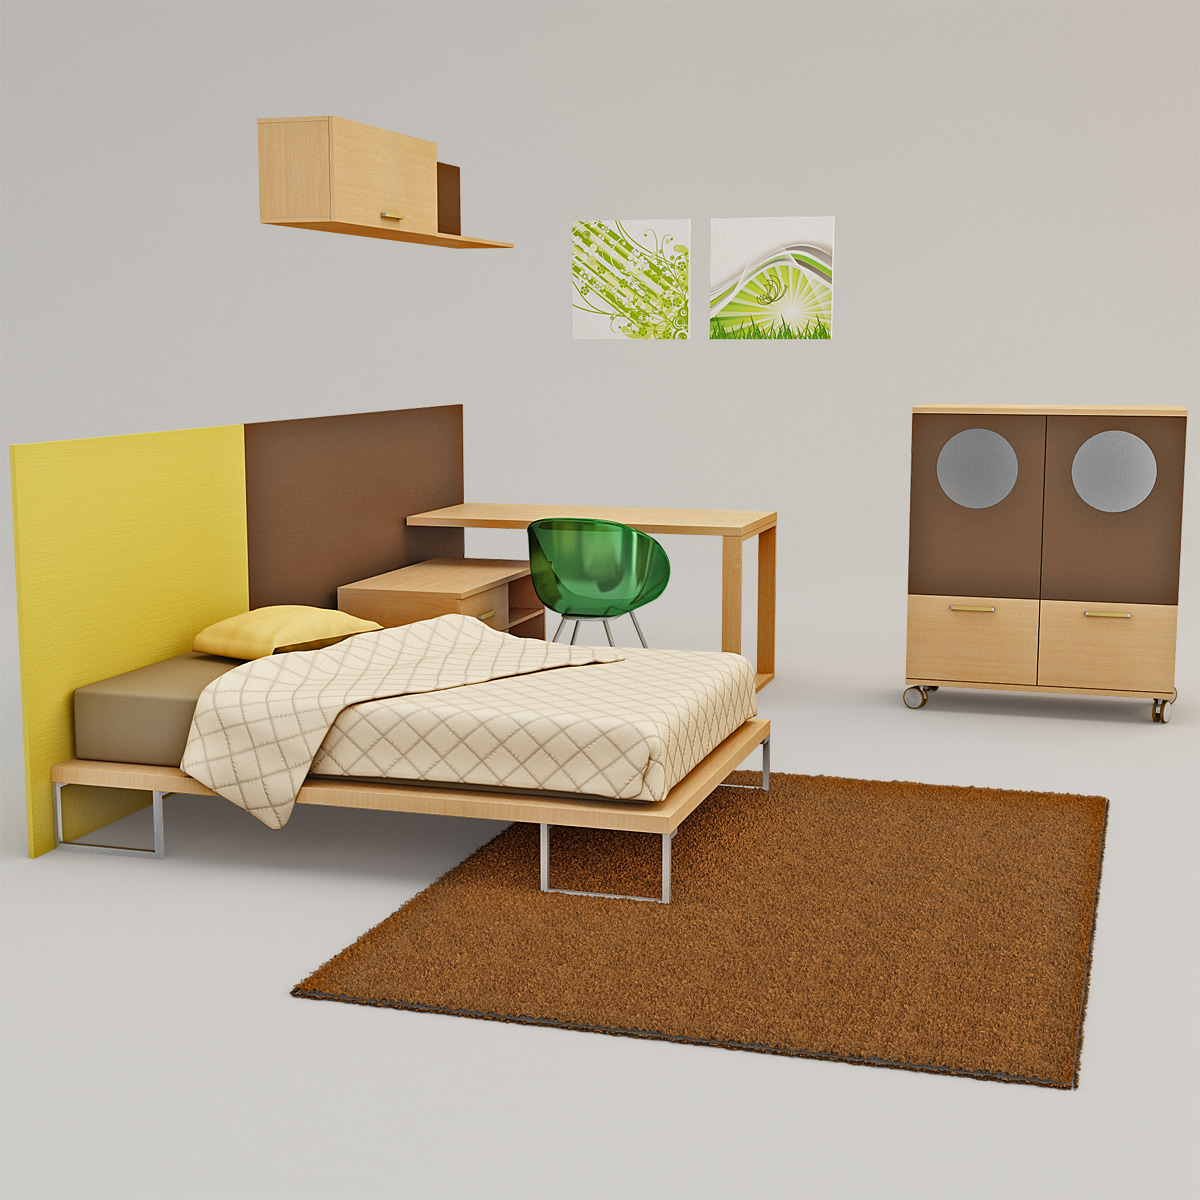 Kids Bedroom 3d Model bedroom furniture 3d model